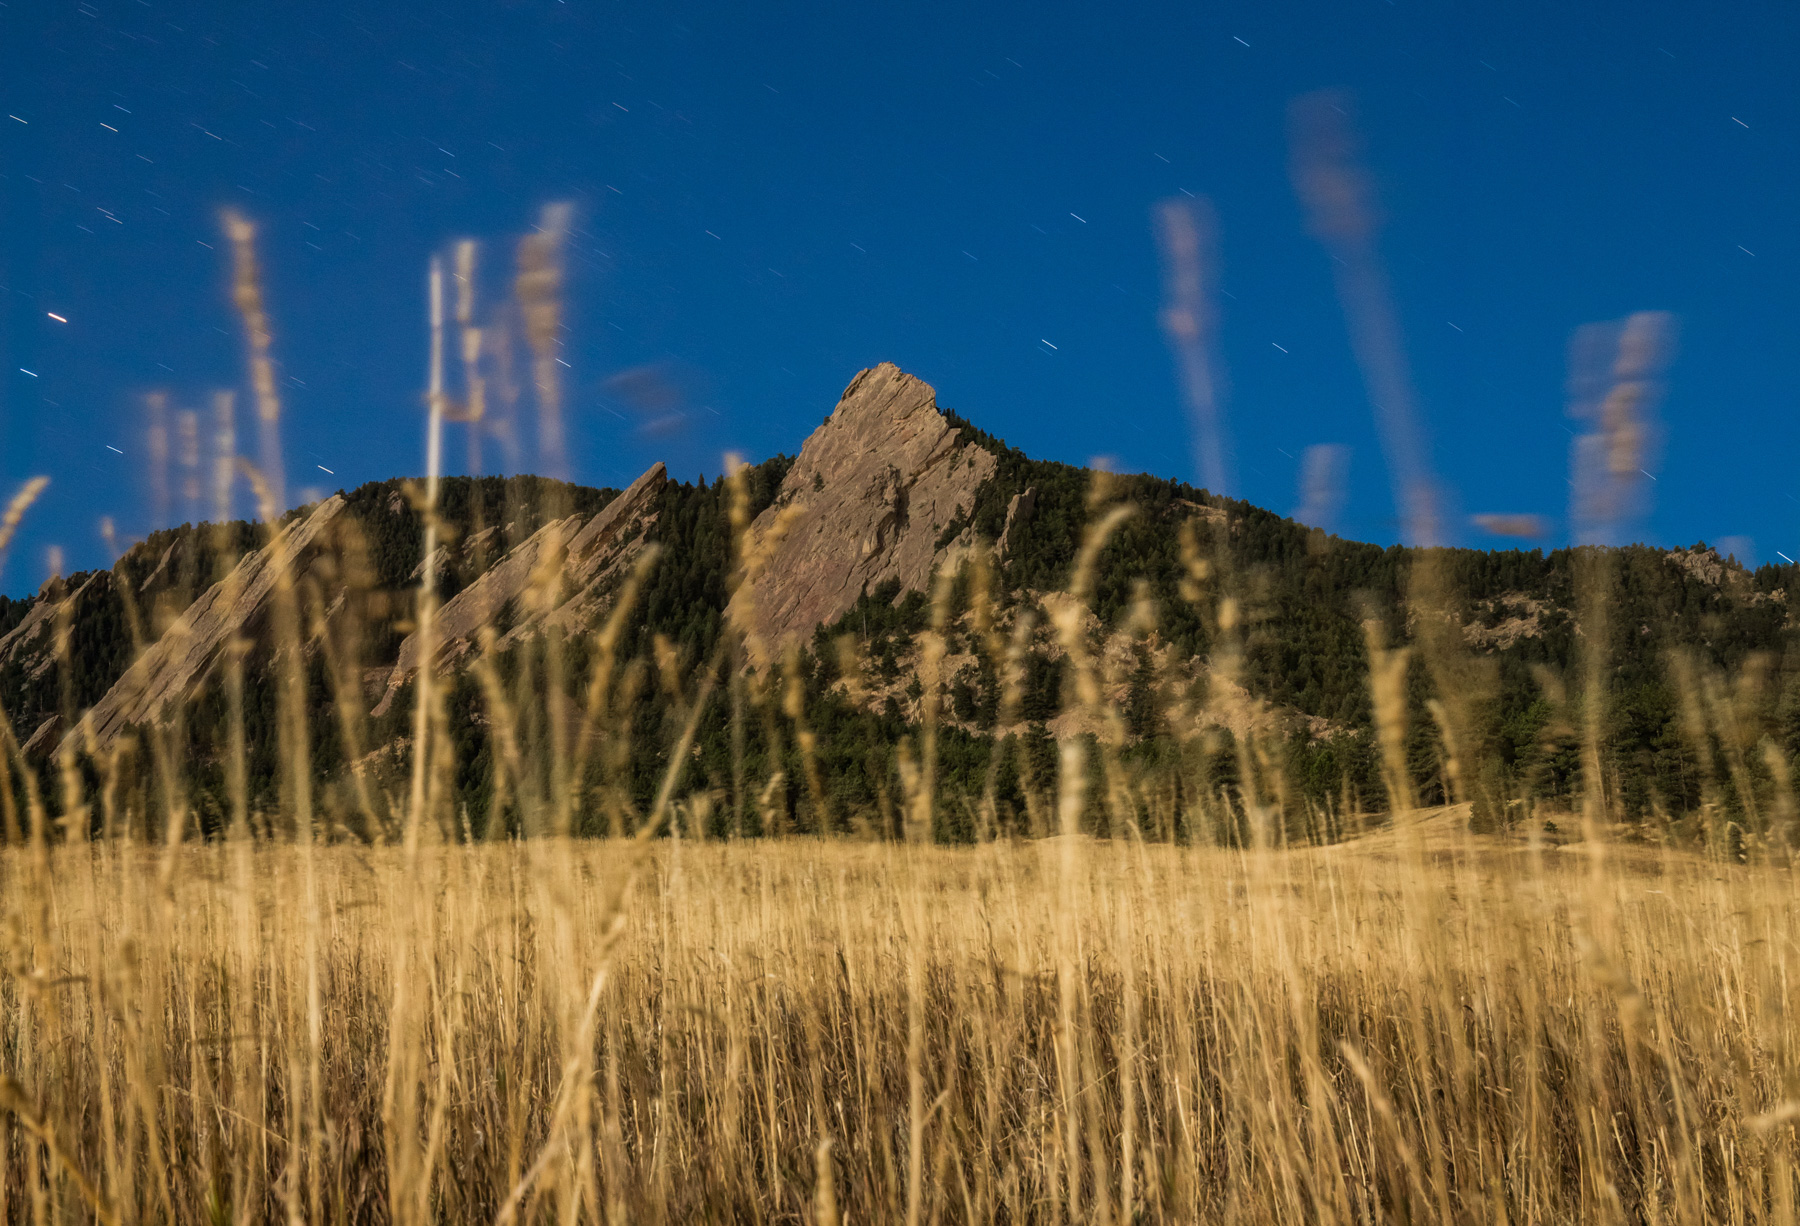 Night photo of Flatirons mountains in Boulder, Colorado at Chautauqua park with grass in foreground.